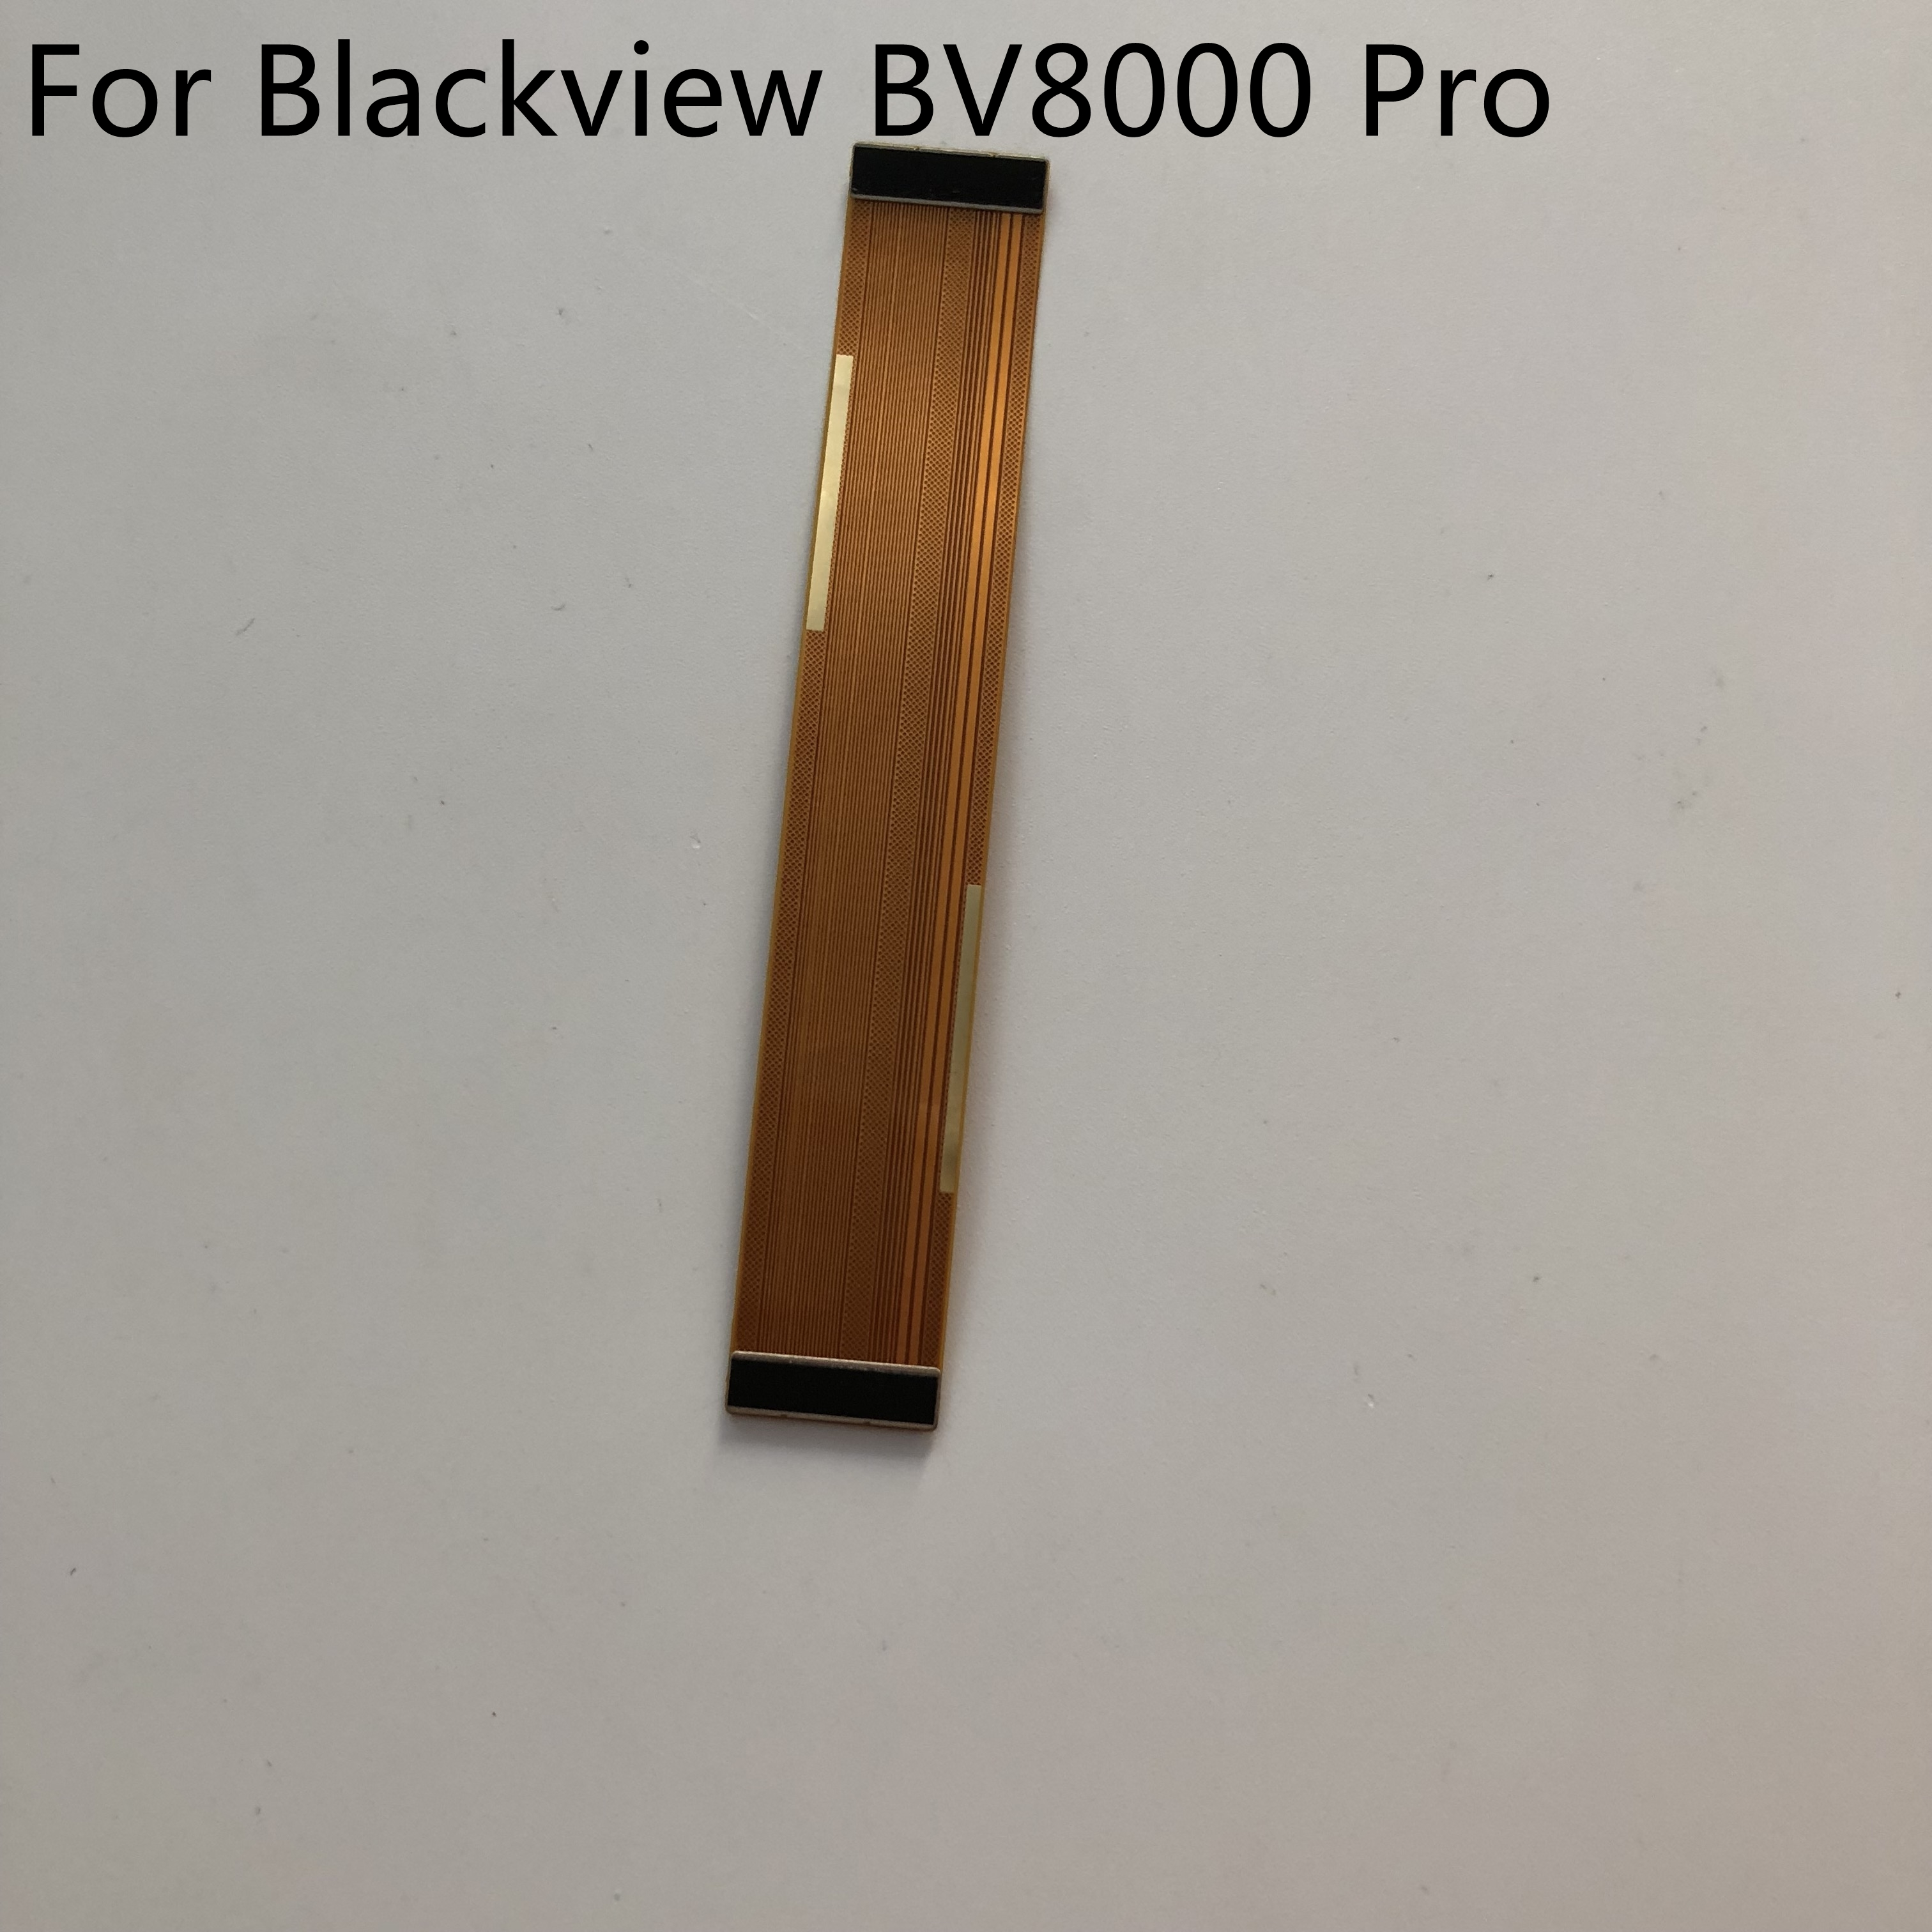 Original Blackview BV8000 USB Charge Board To Motherboard FPC For Blackview BV8000 Pro MTK6757 Octa Core 5.0